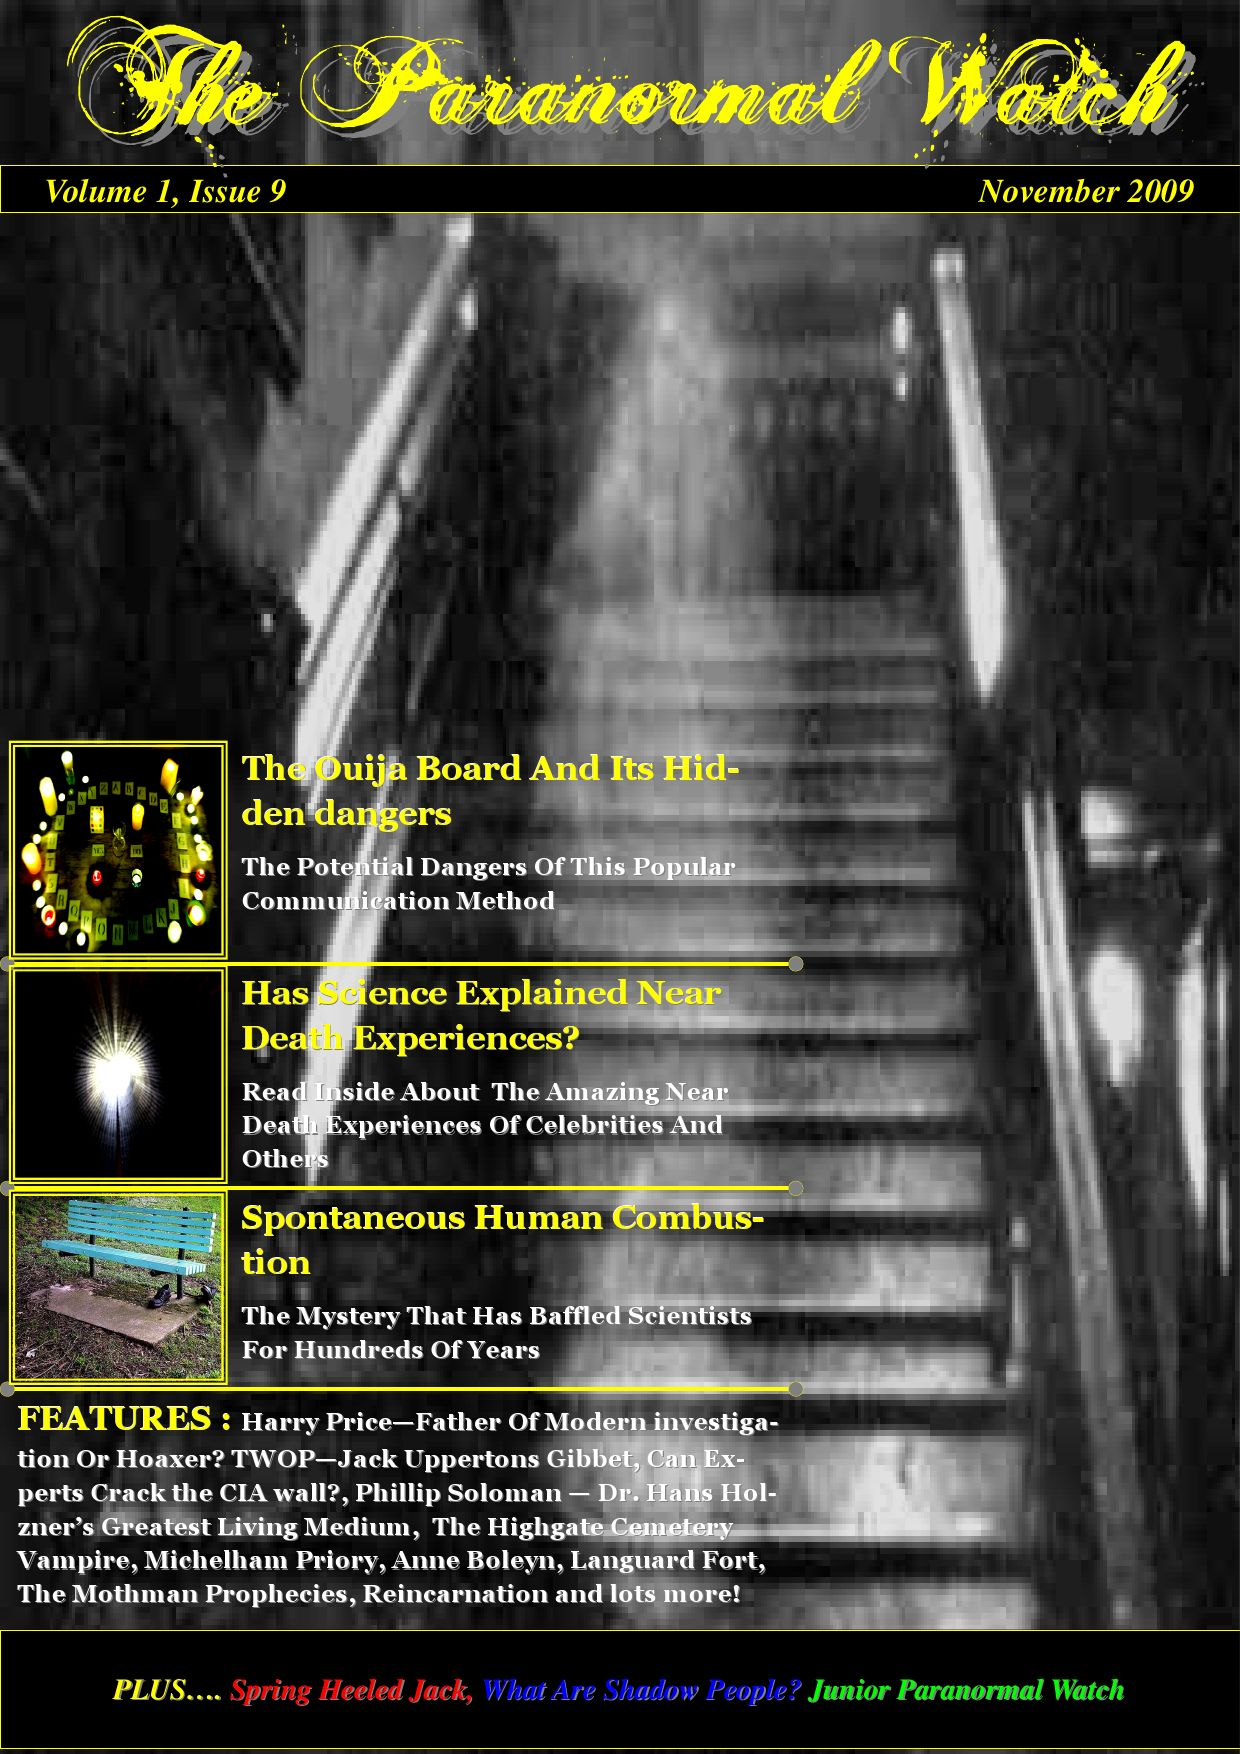 Encyclopedia of haunted places ghostly locales from around the encyclopedia of haunted places ghostly locales from around the world by john john ereno issuu fandeluxe Image collections